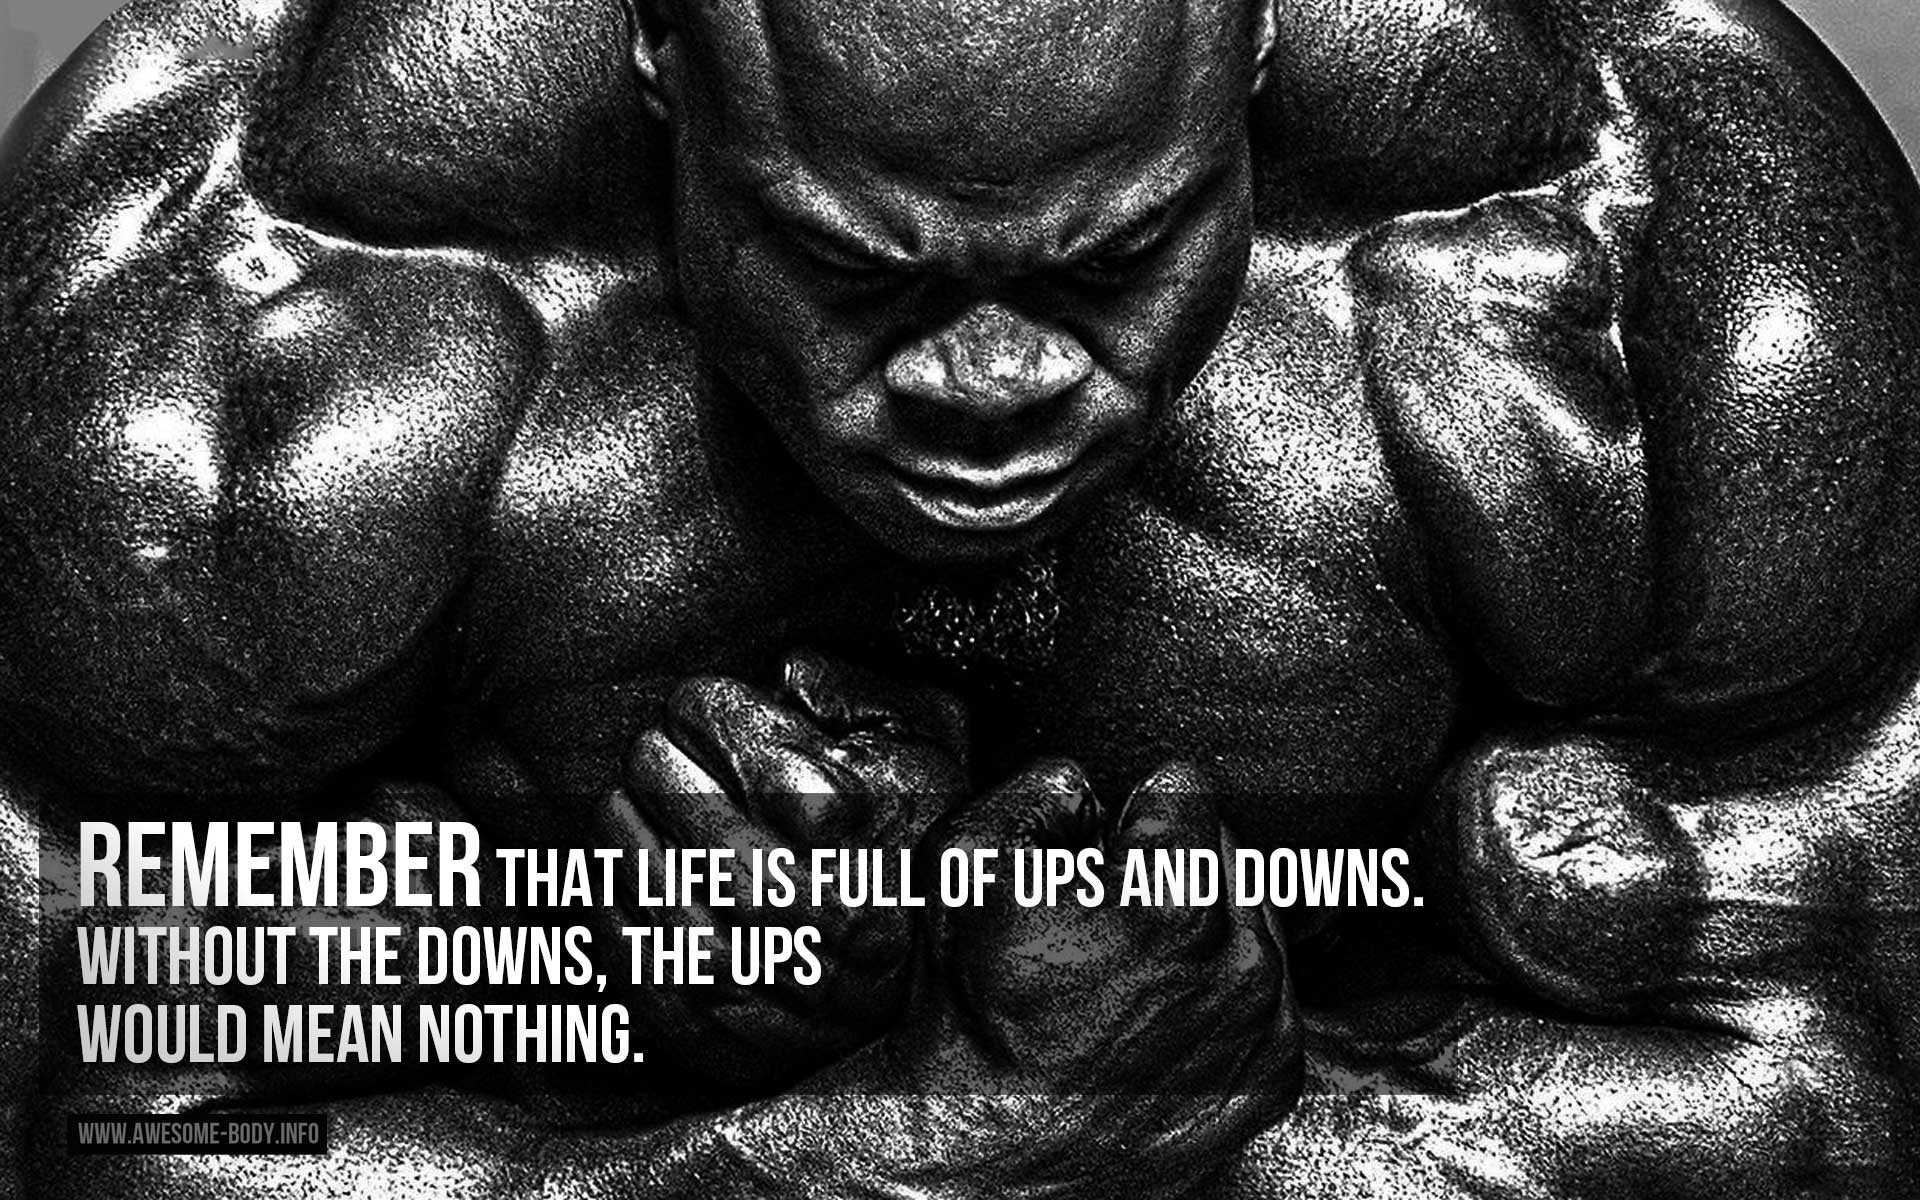 bodybuilding wallpaper archives awesome body